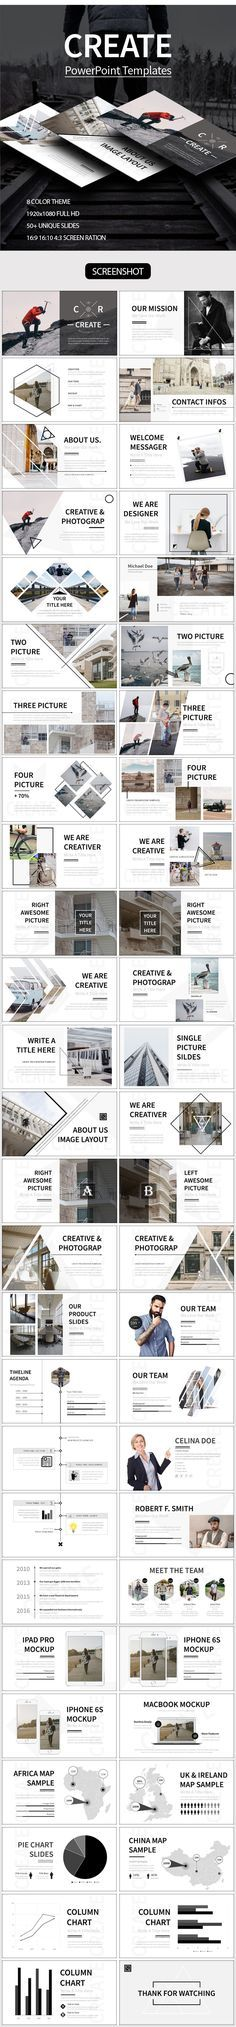 Best 25+ Sales presentation ideas on Pinterest Presentation - Sales Presentation Template